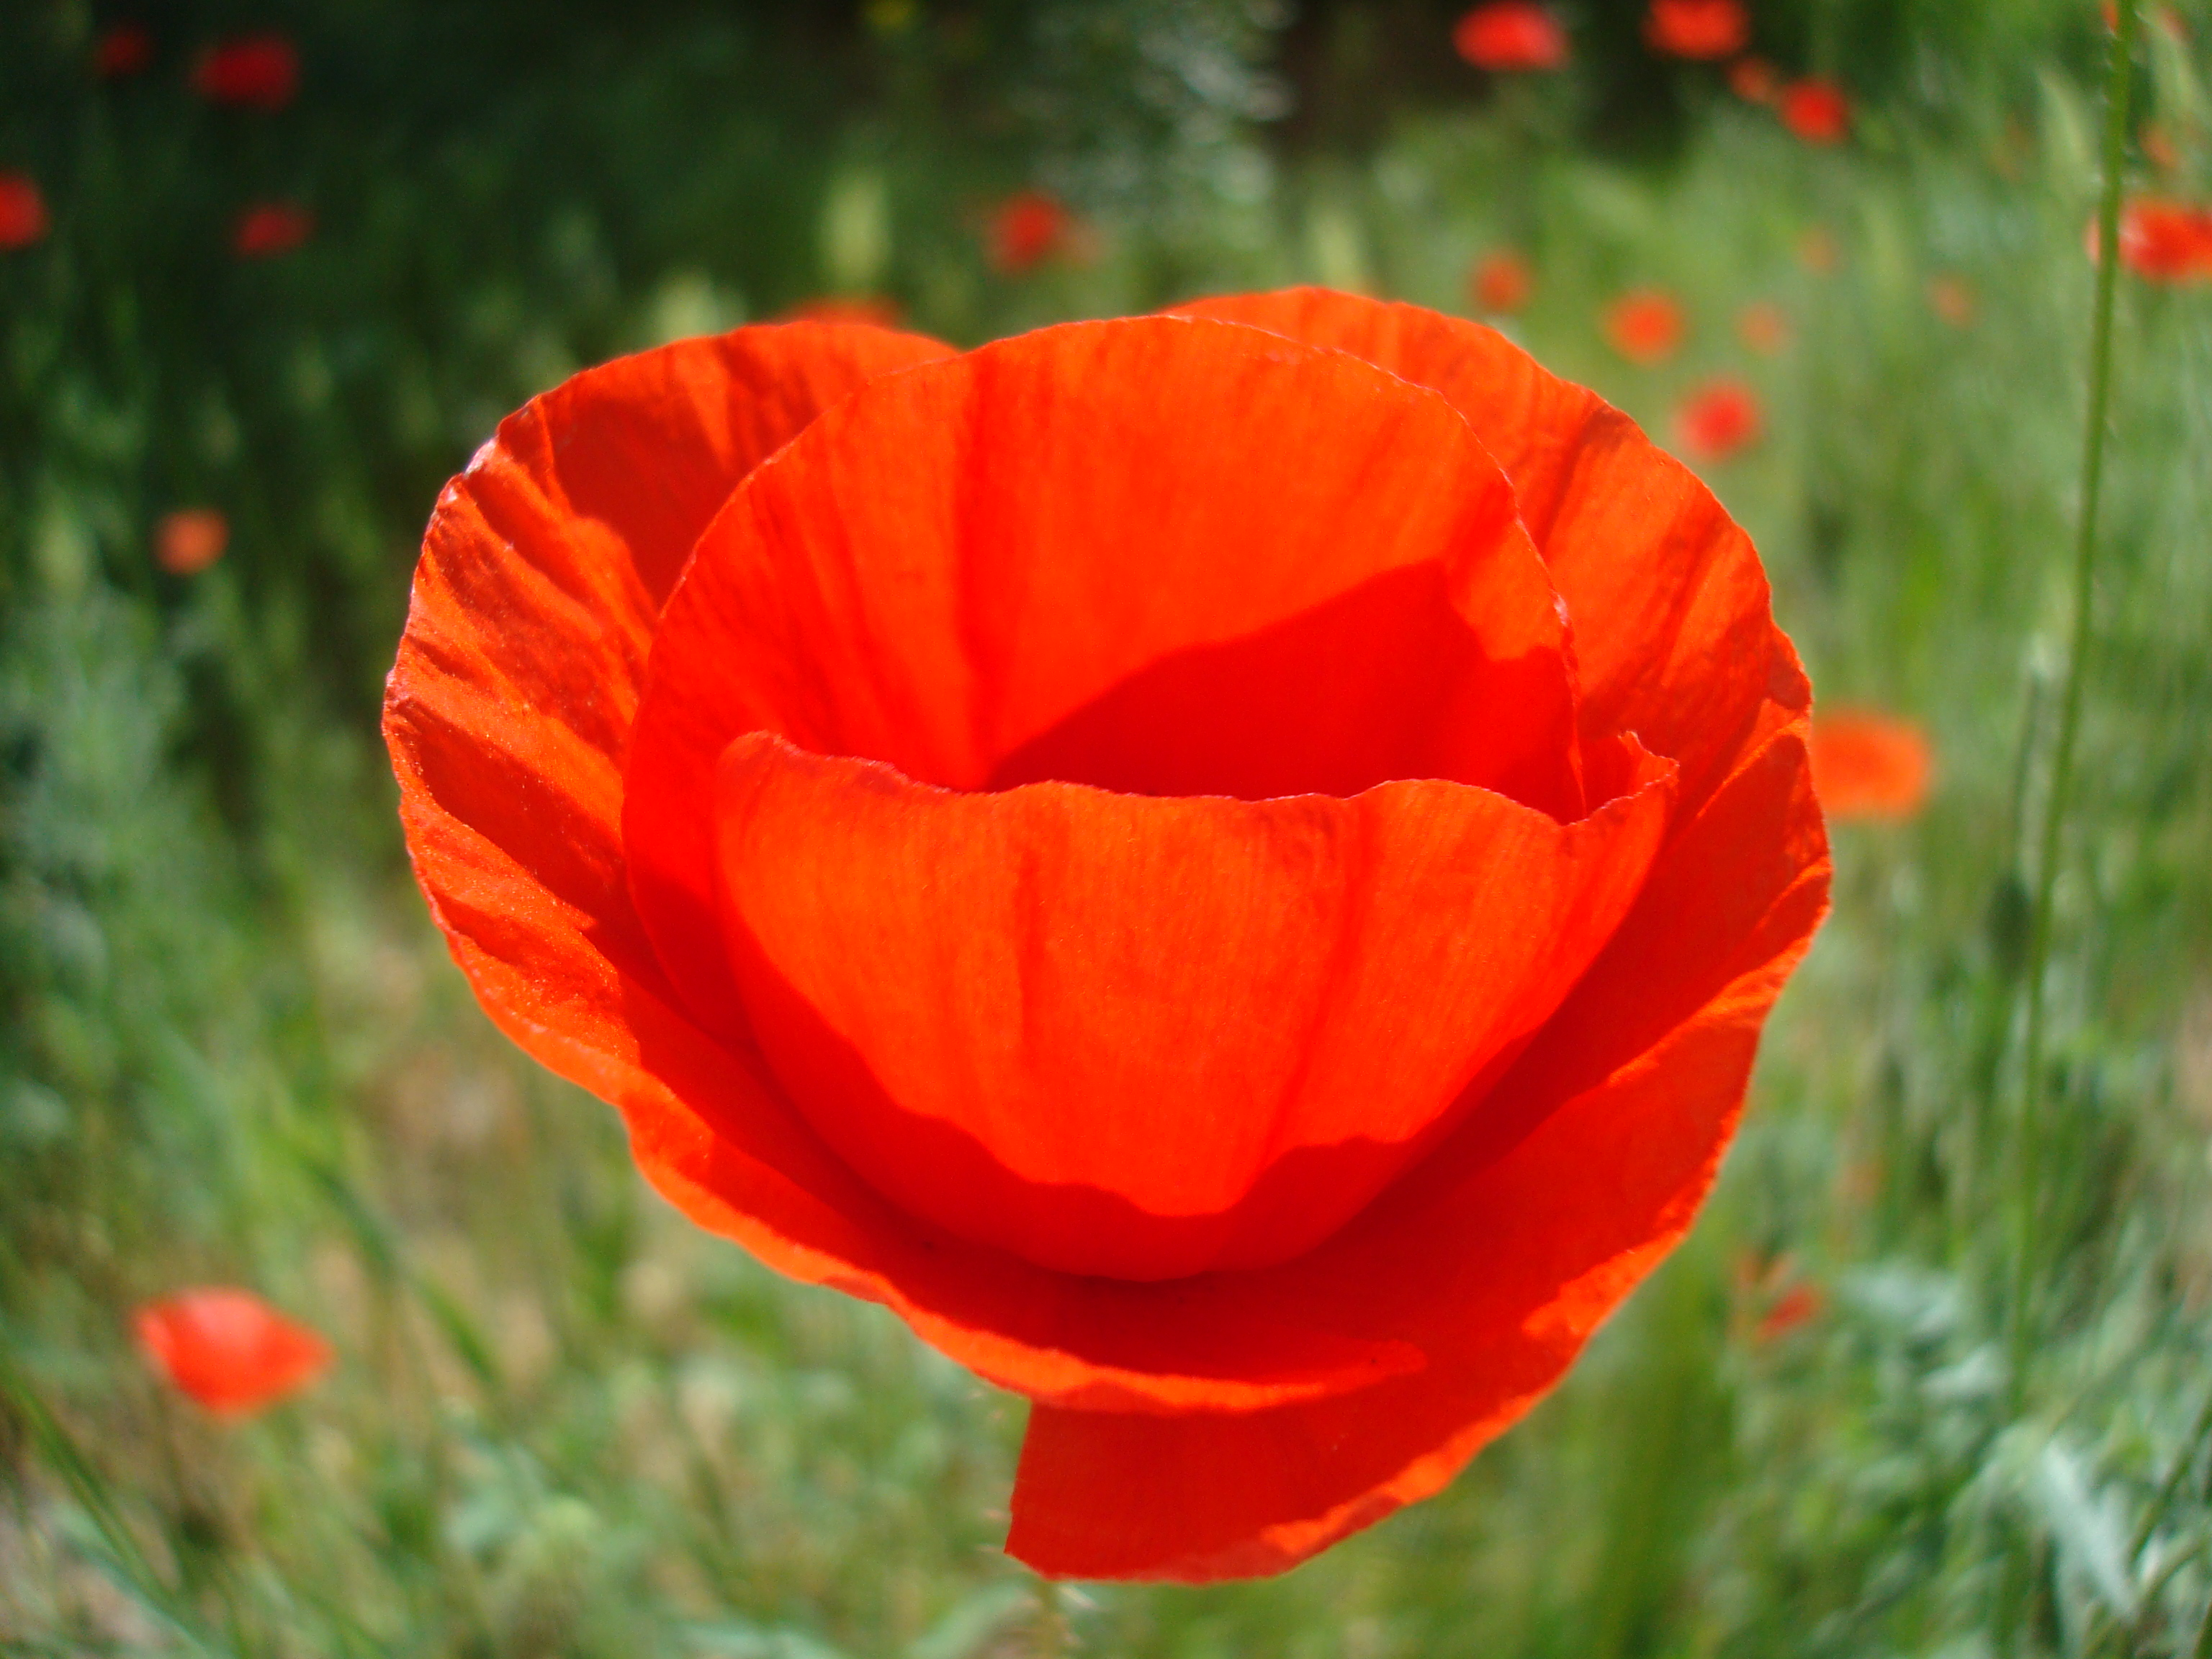 Red poppy flower, Wild, Outdoors, Wallpaper, Summer, HQ Photo